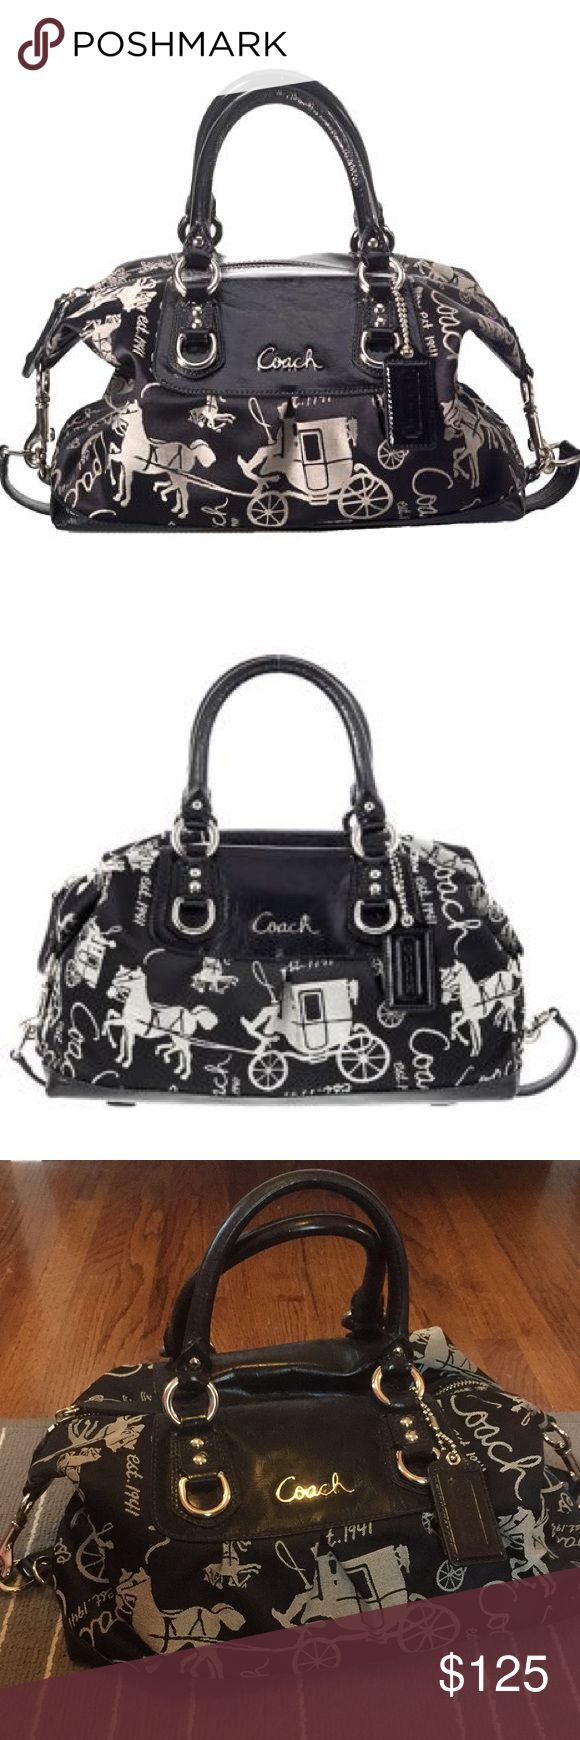 """Coach """"Ashley"""" bag Coach """"Ashley"""" bag in black with the classic horse and carriage print. Has two short top handles and a long shoulder strap. Excellent condition with no stains. Coach Bags Satchels"""